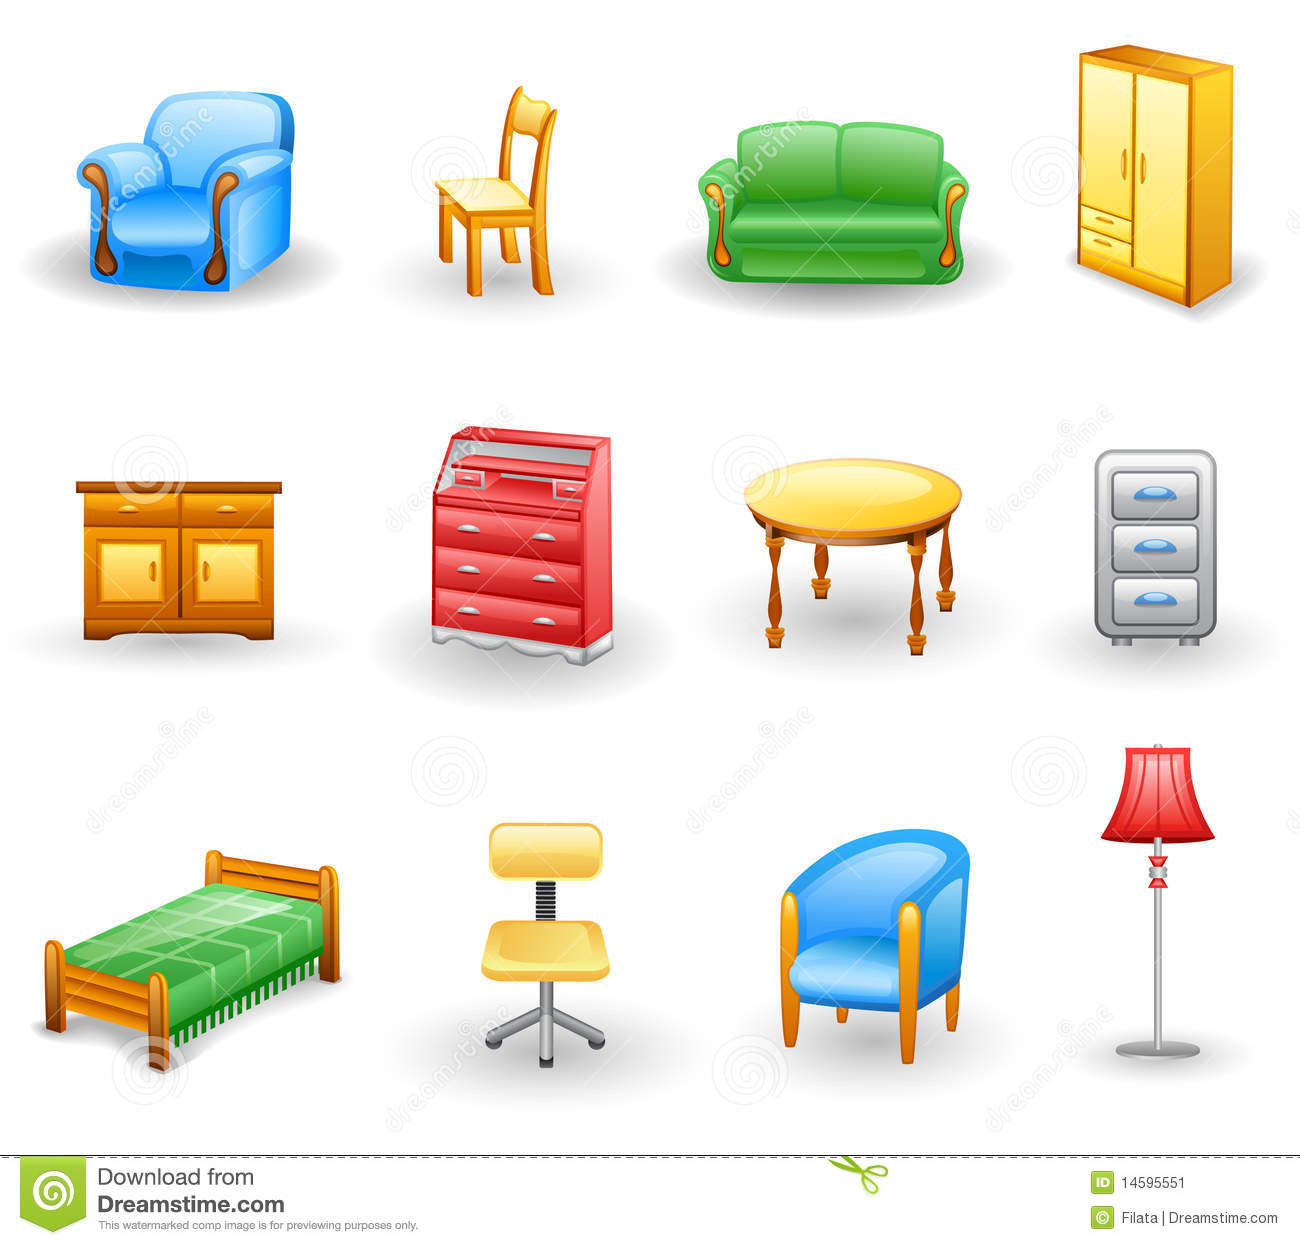 Furniture icon set. Isolated on a white background